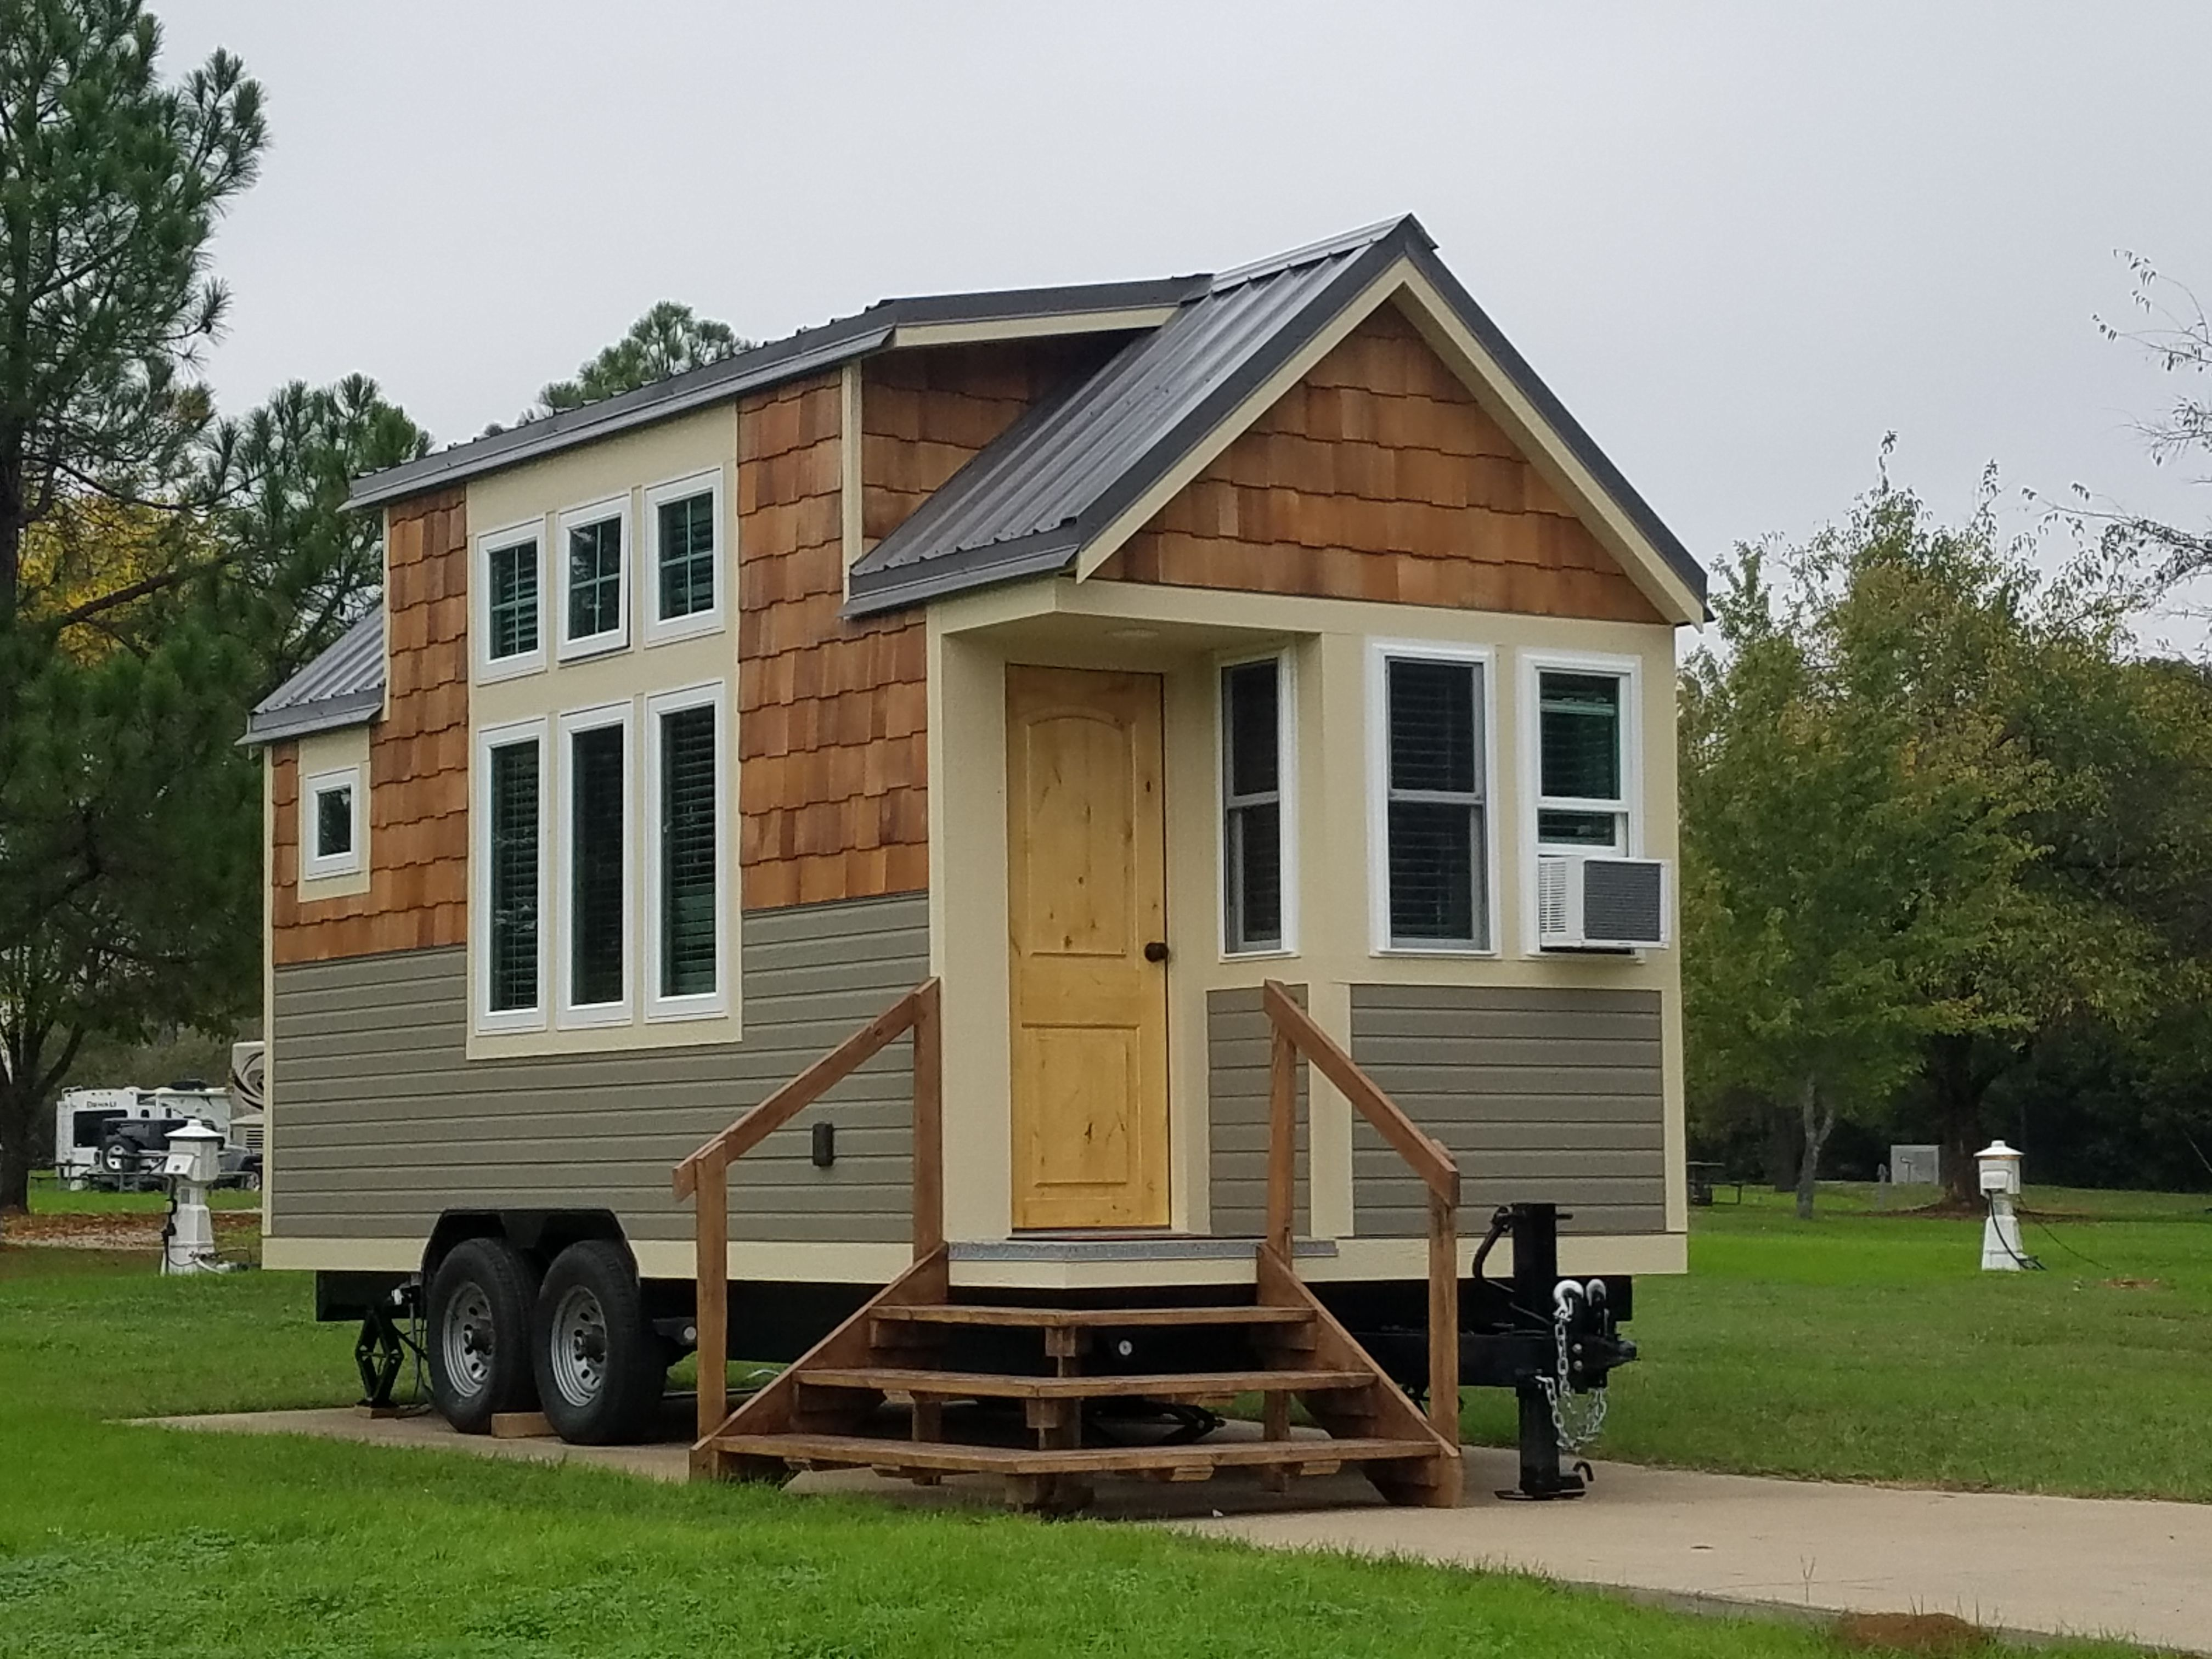 Affordable Tiny House For 7 5k Tiny House Camper Tiny House